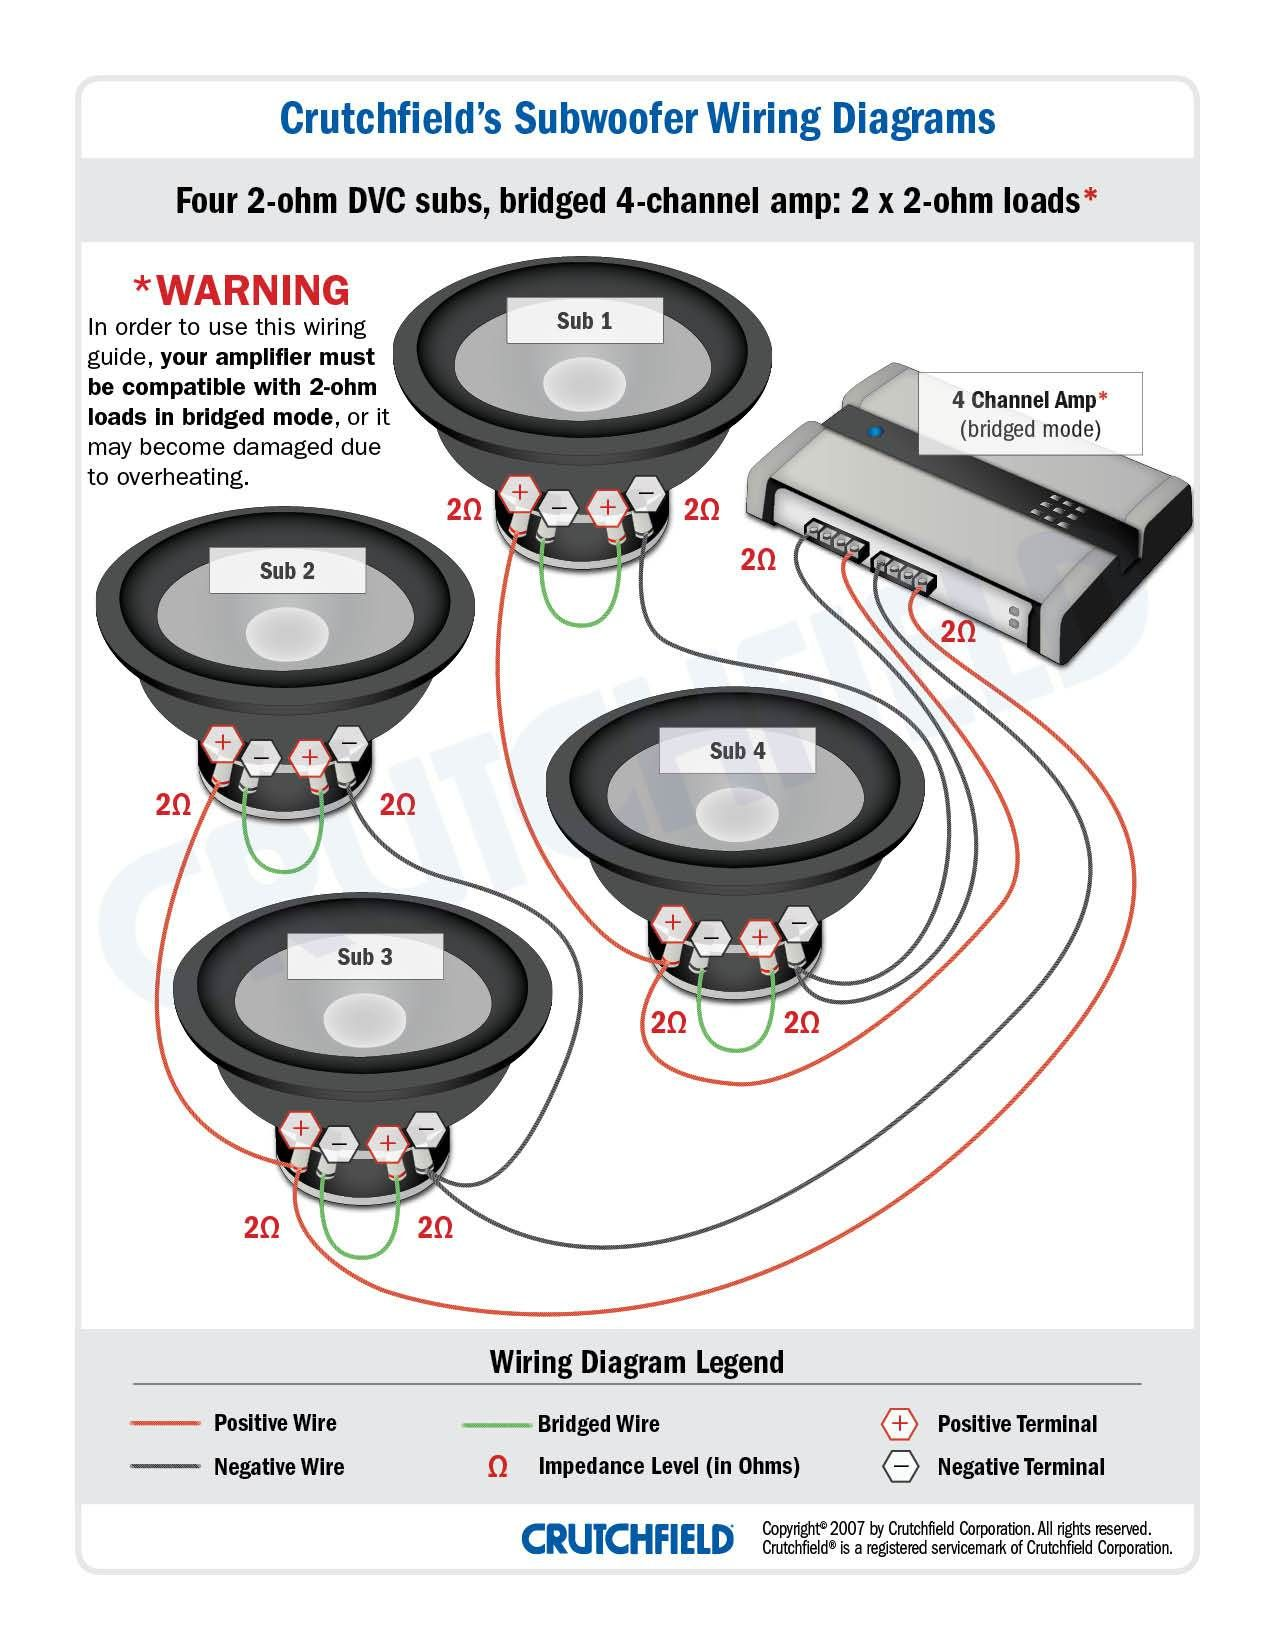 subwoofer wiring diagrams throughout 4 ohm dual voice coil diagram aiwa wiring diagram subwoofer wiring diagrams throughout 4 ohm dual voice coil diagram inside 1